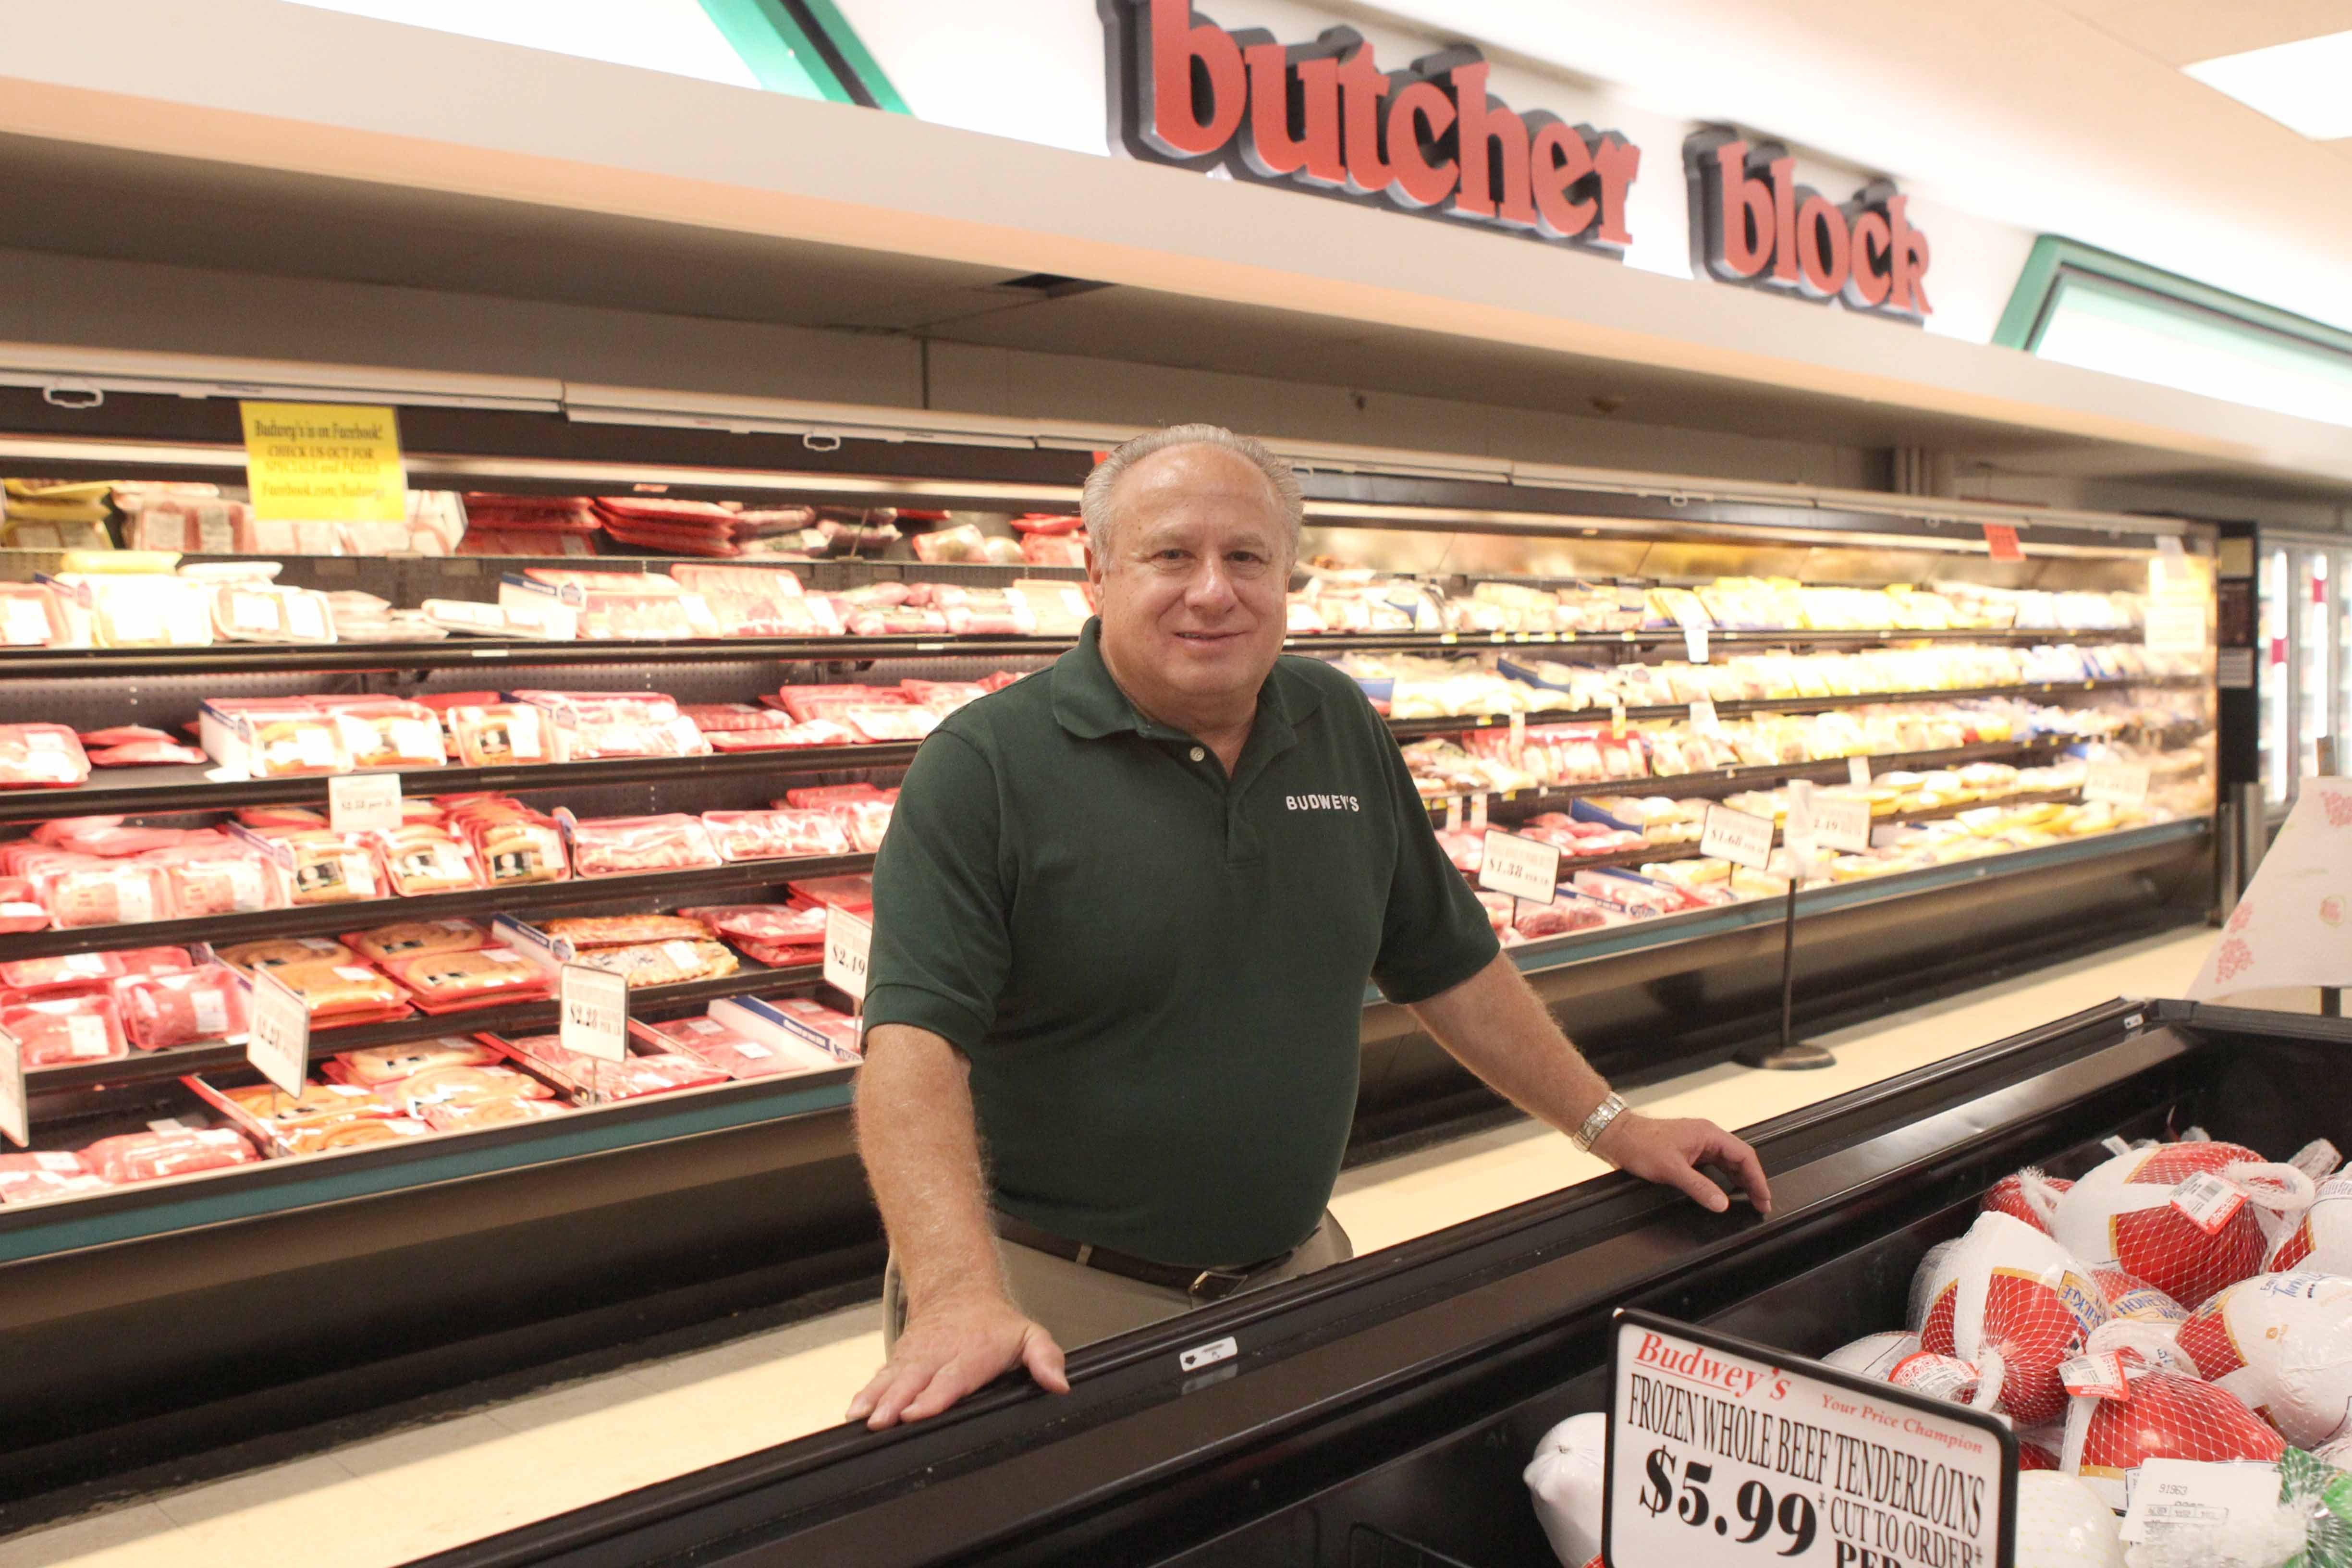 Frank Budwey will now focus his attention on his last remaining supermarket, in North Tonawanda, which he plans to keep strong as the anchor of a plaza.